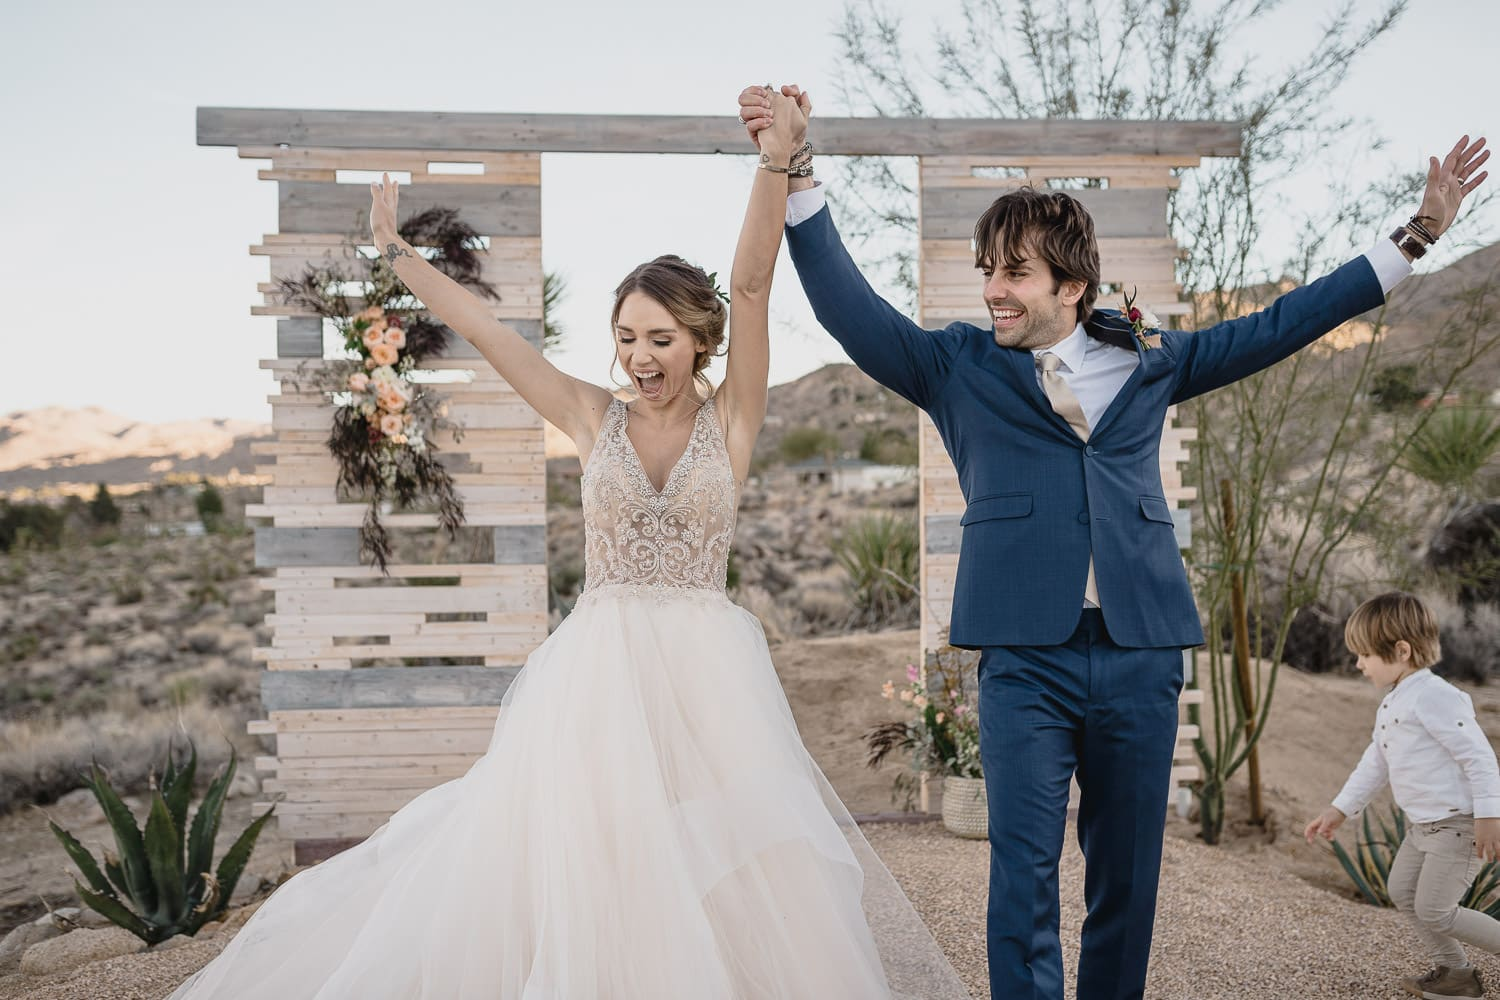 Melanie + Anthony Joshua Tree Intimate Elopement 19